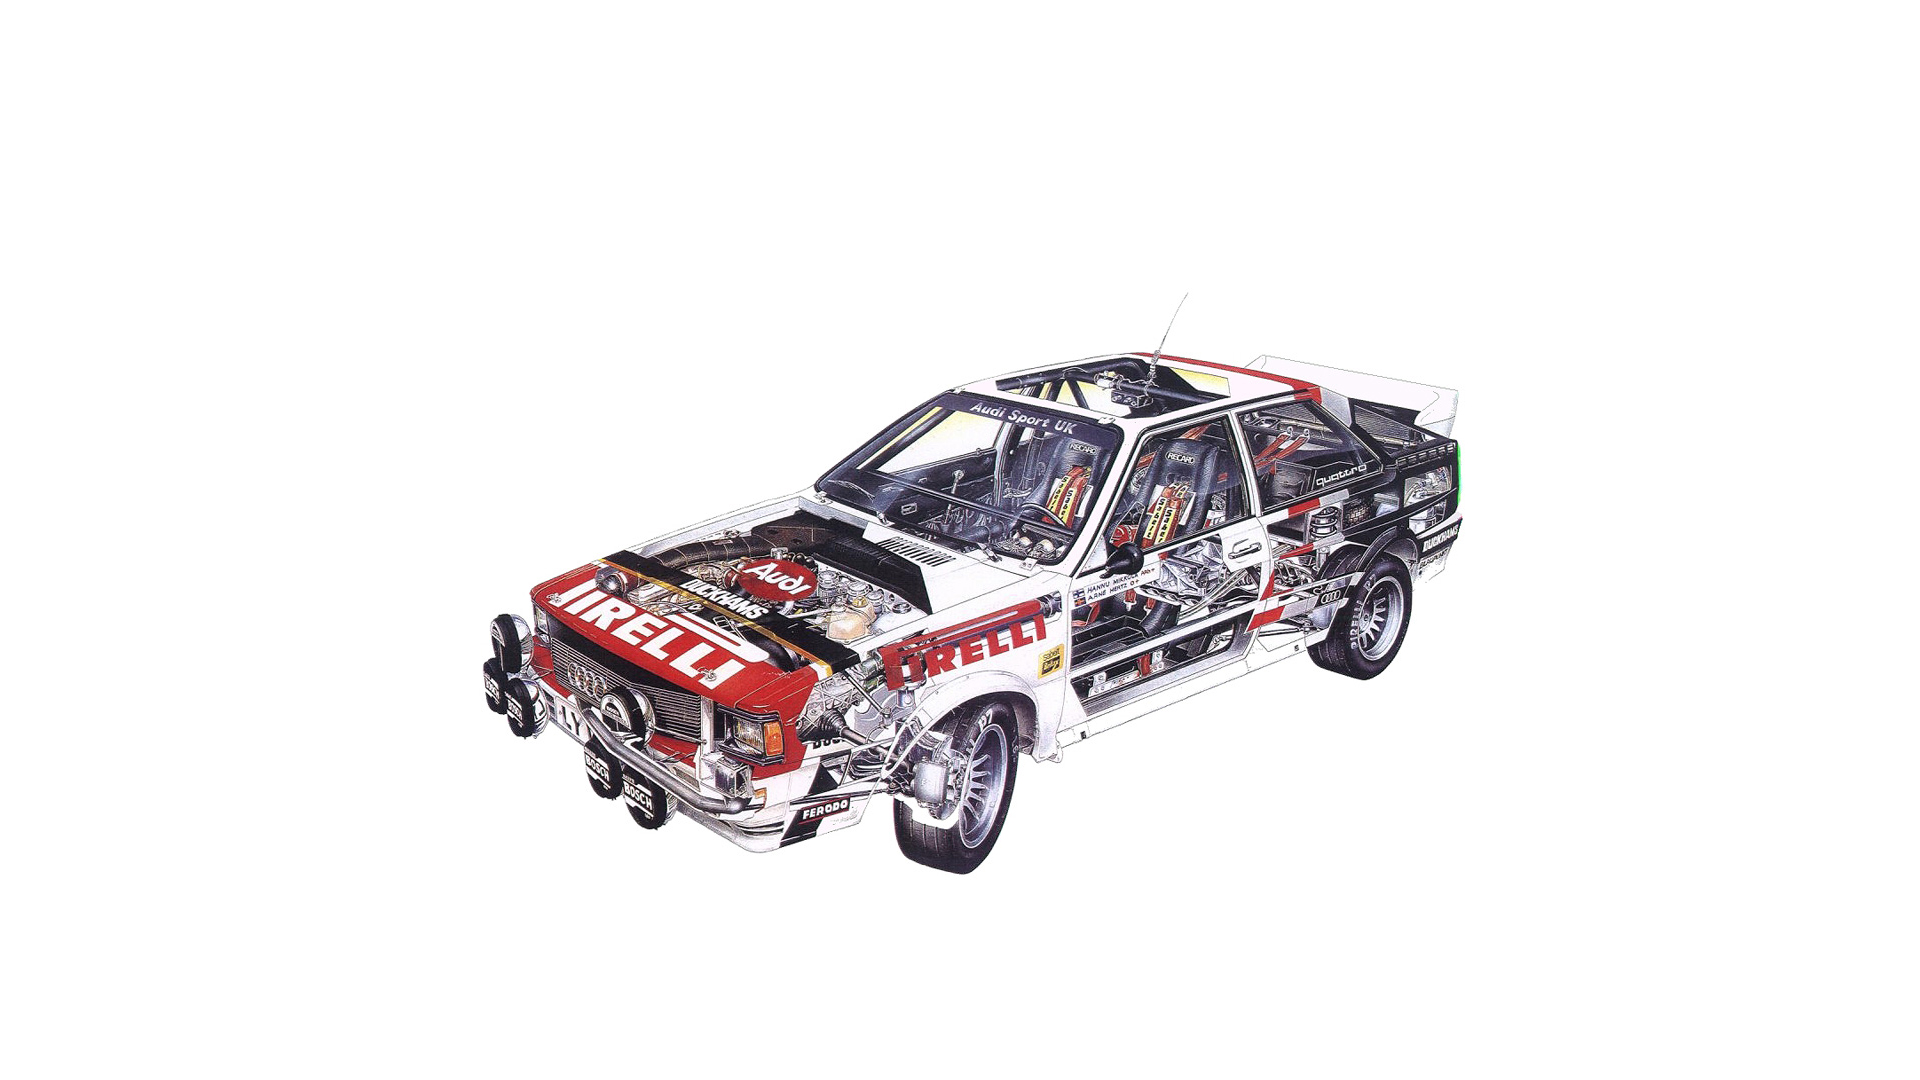 Audi Sport quattro - FIA Group 4 Rally Car - 1981 - 1982 - drivetrain